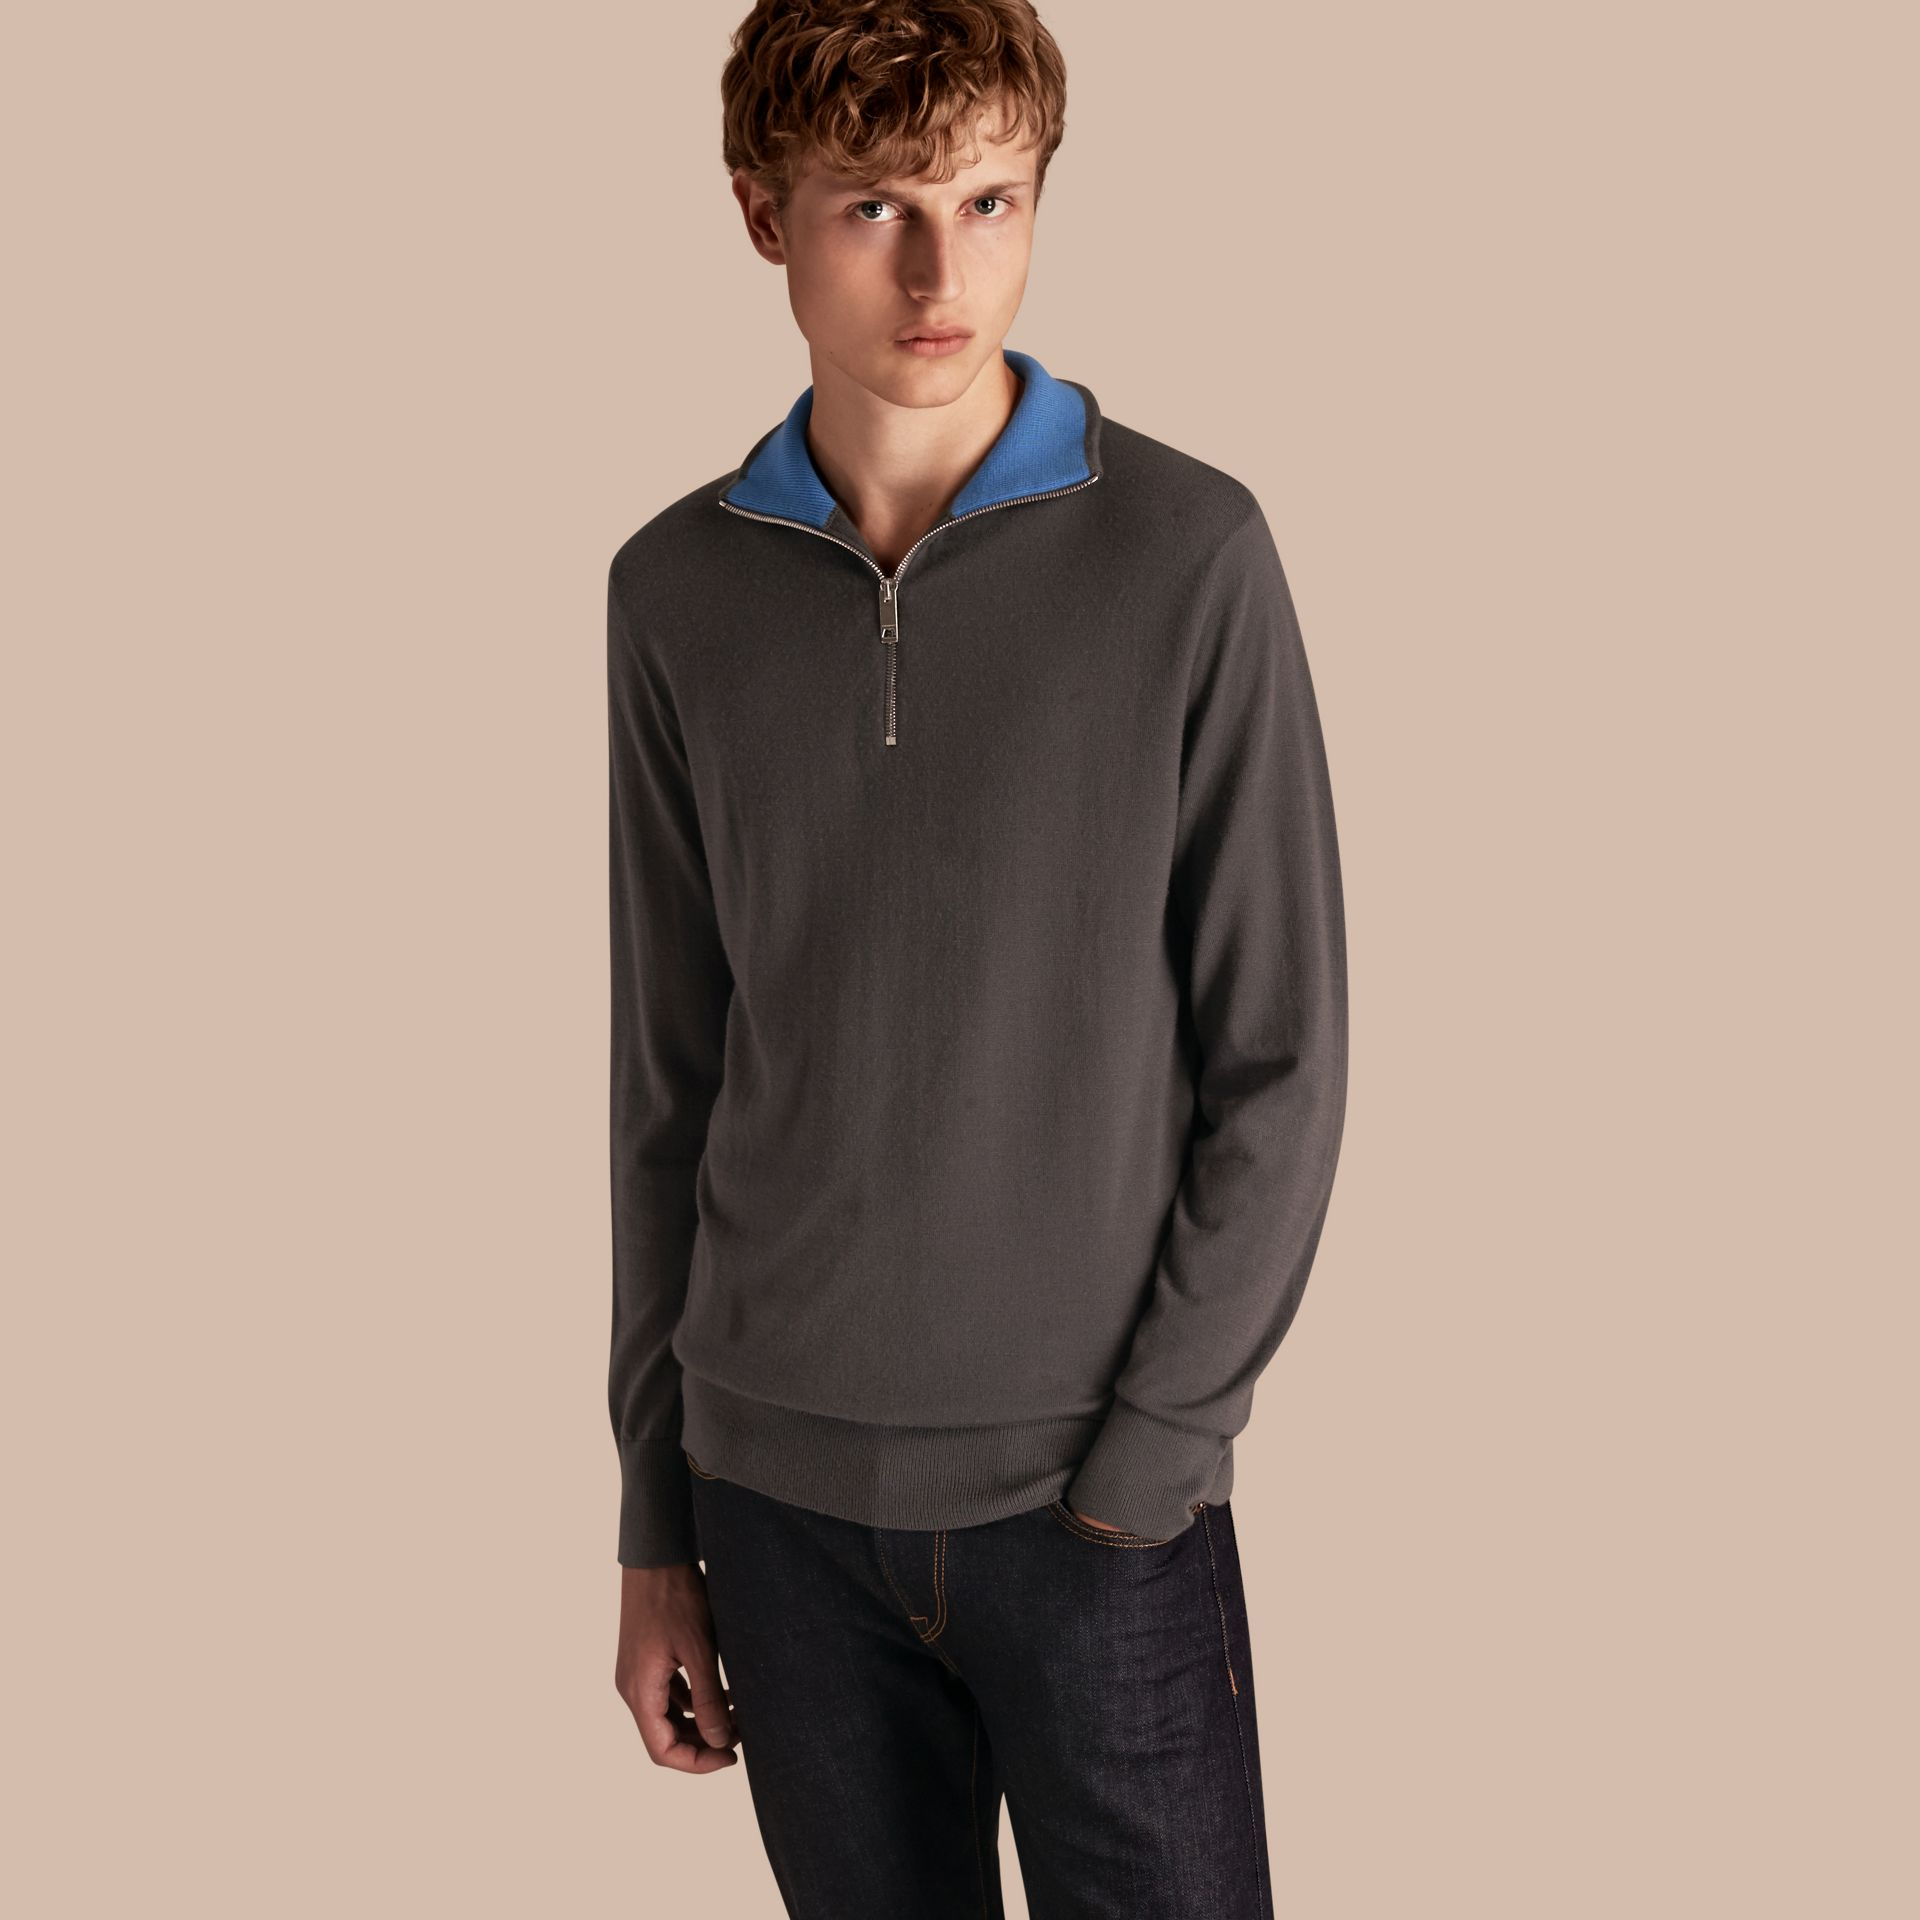 Zip-collar Cashmere Sweater in Mid Grey Melange - Men | Burberry - gallery image 1